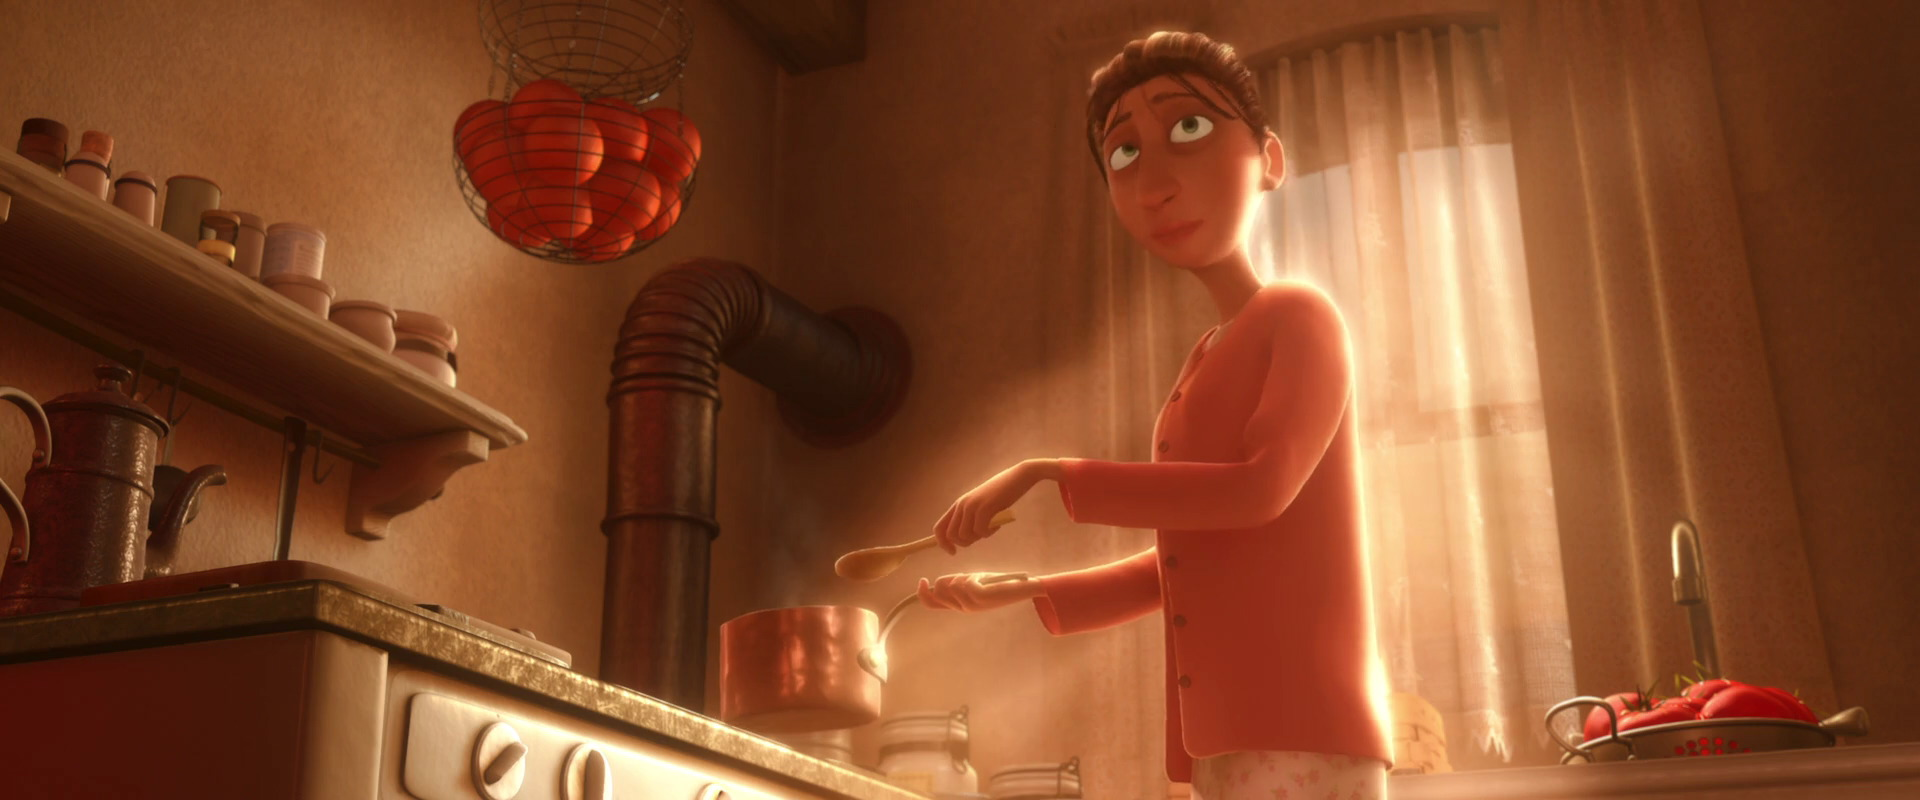 madame mrs ego personnage character pixar disney ratatouille